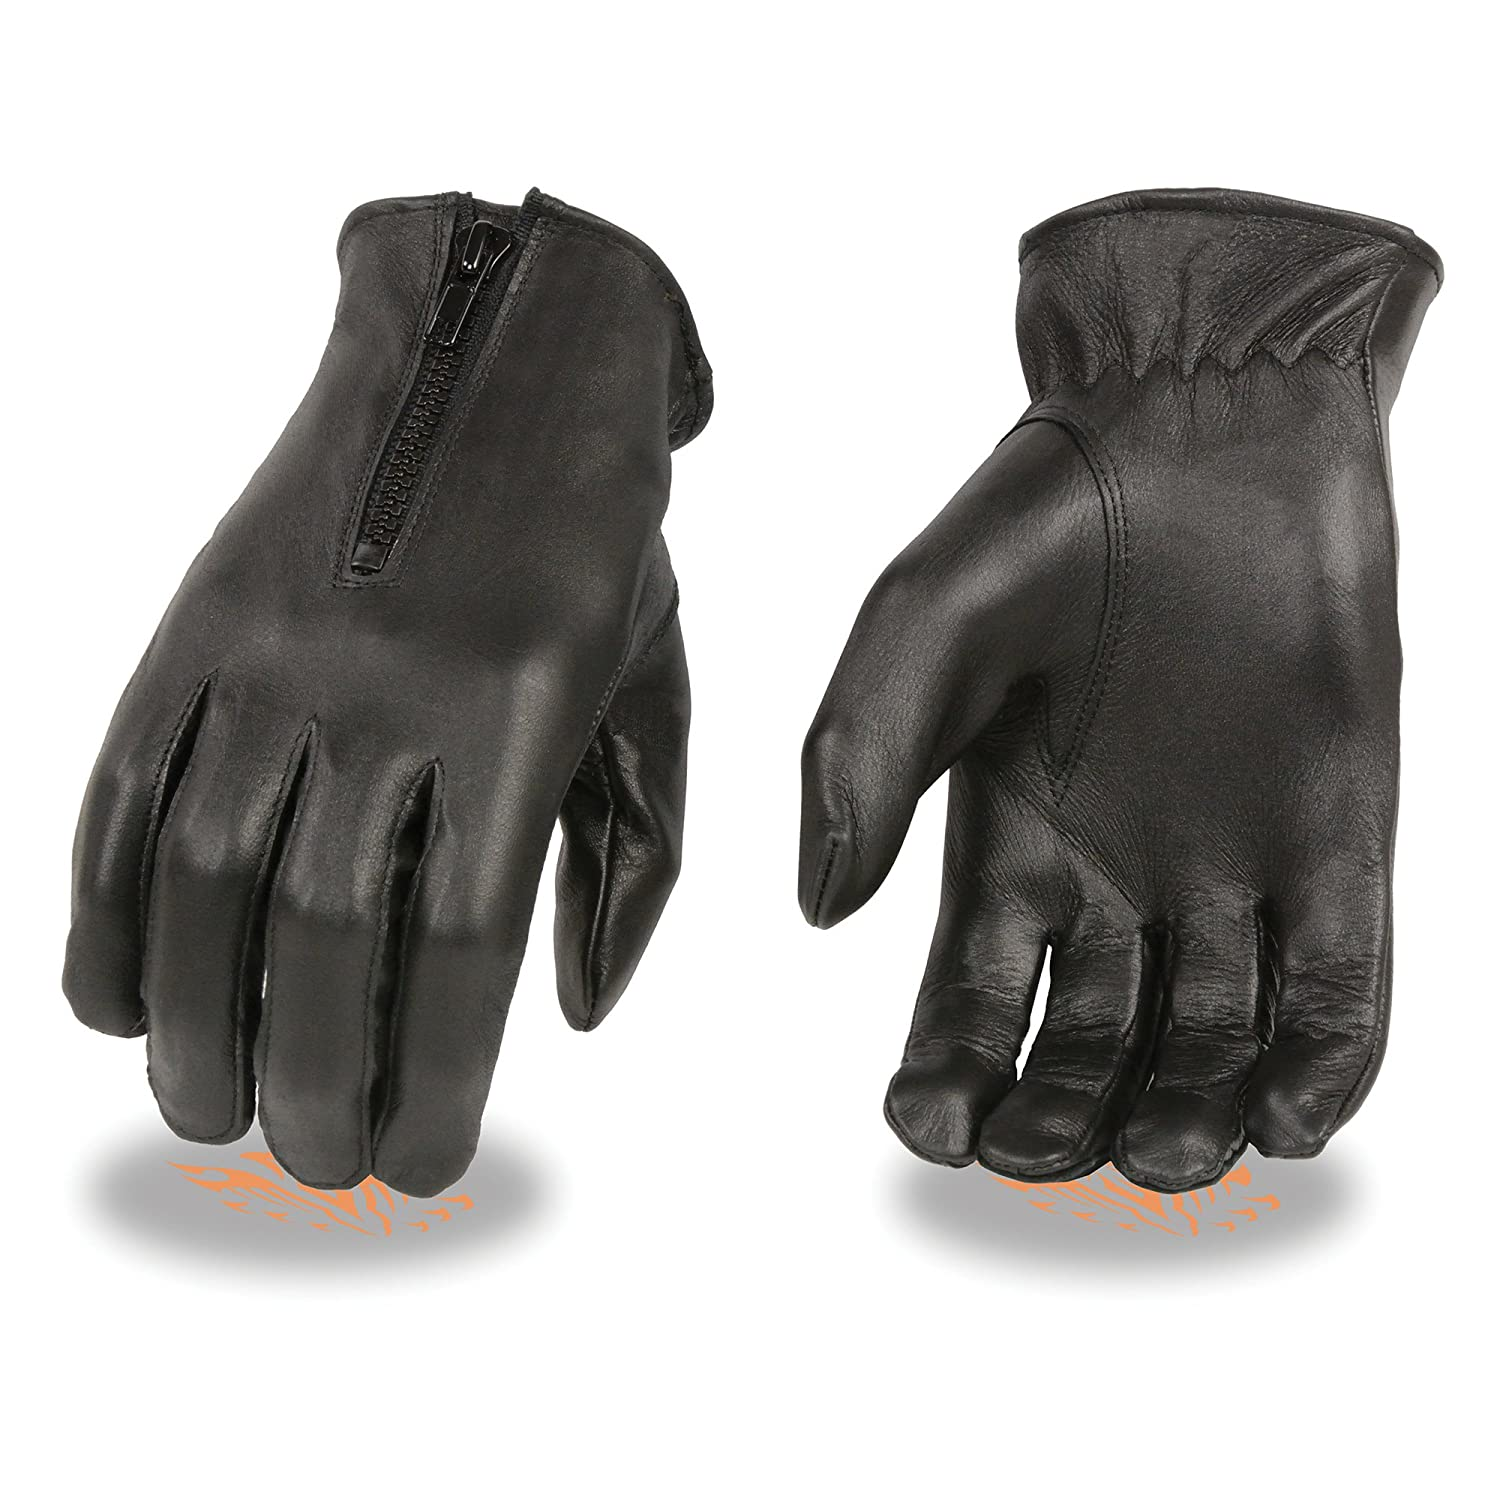 Ladies very soft Thick cow hide Leather black winter driving gloves. Warm fleece lining, Wrist length with zipper closure, elastic on wrist (L)